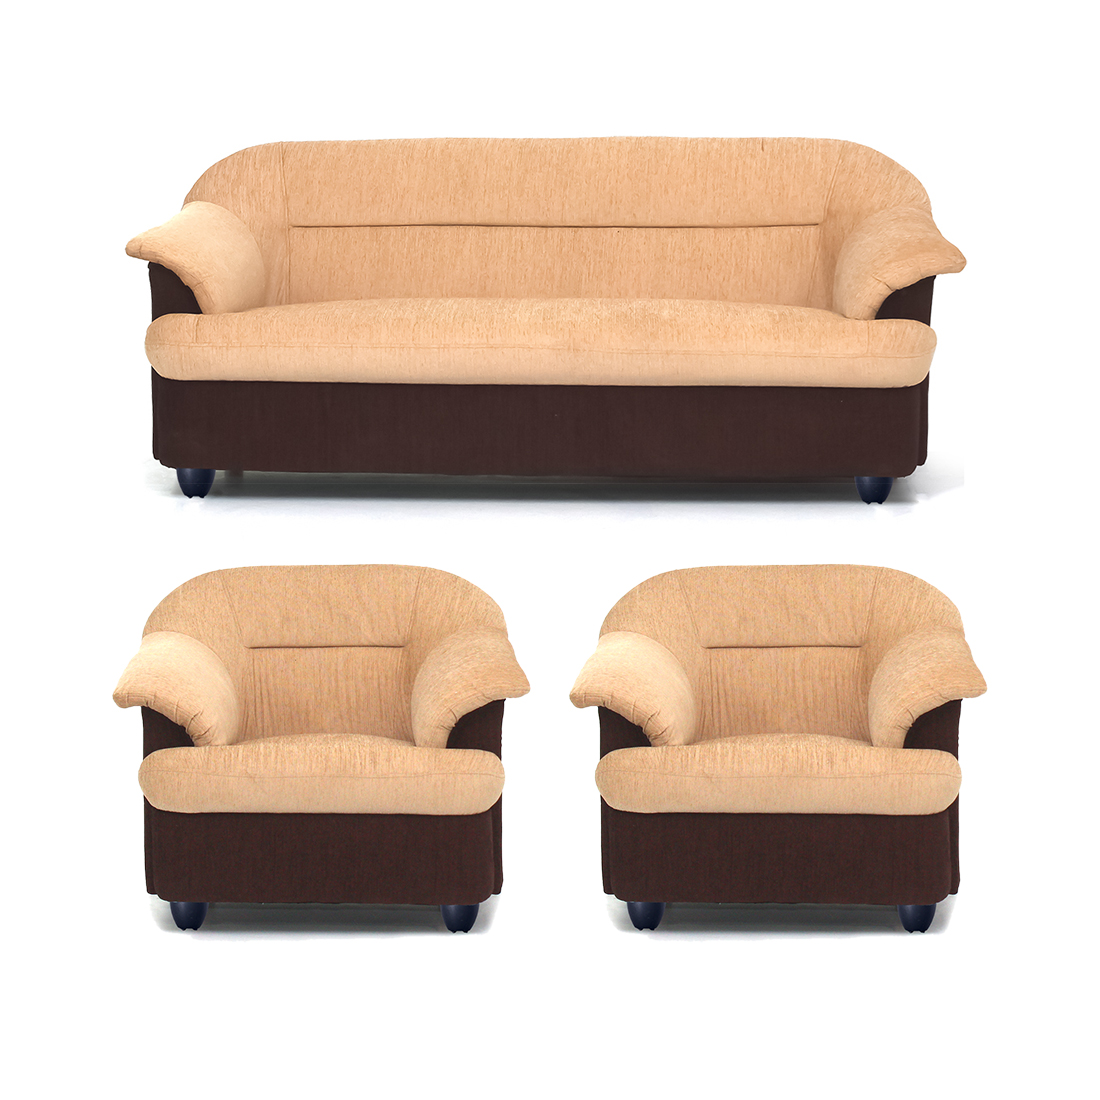 Yellow Sofa Online India Bharat Lifestyle Sagittarius Fabric 3 1 1 Golden Brown Sofa Set